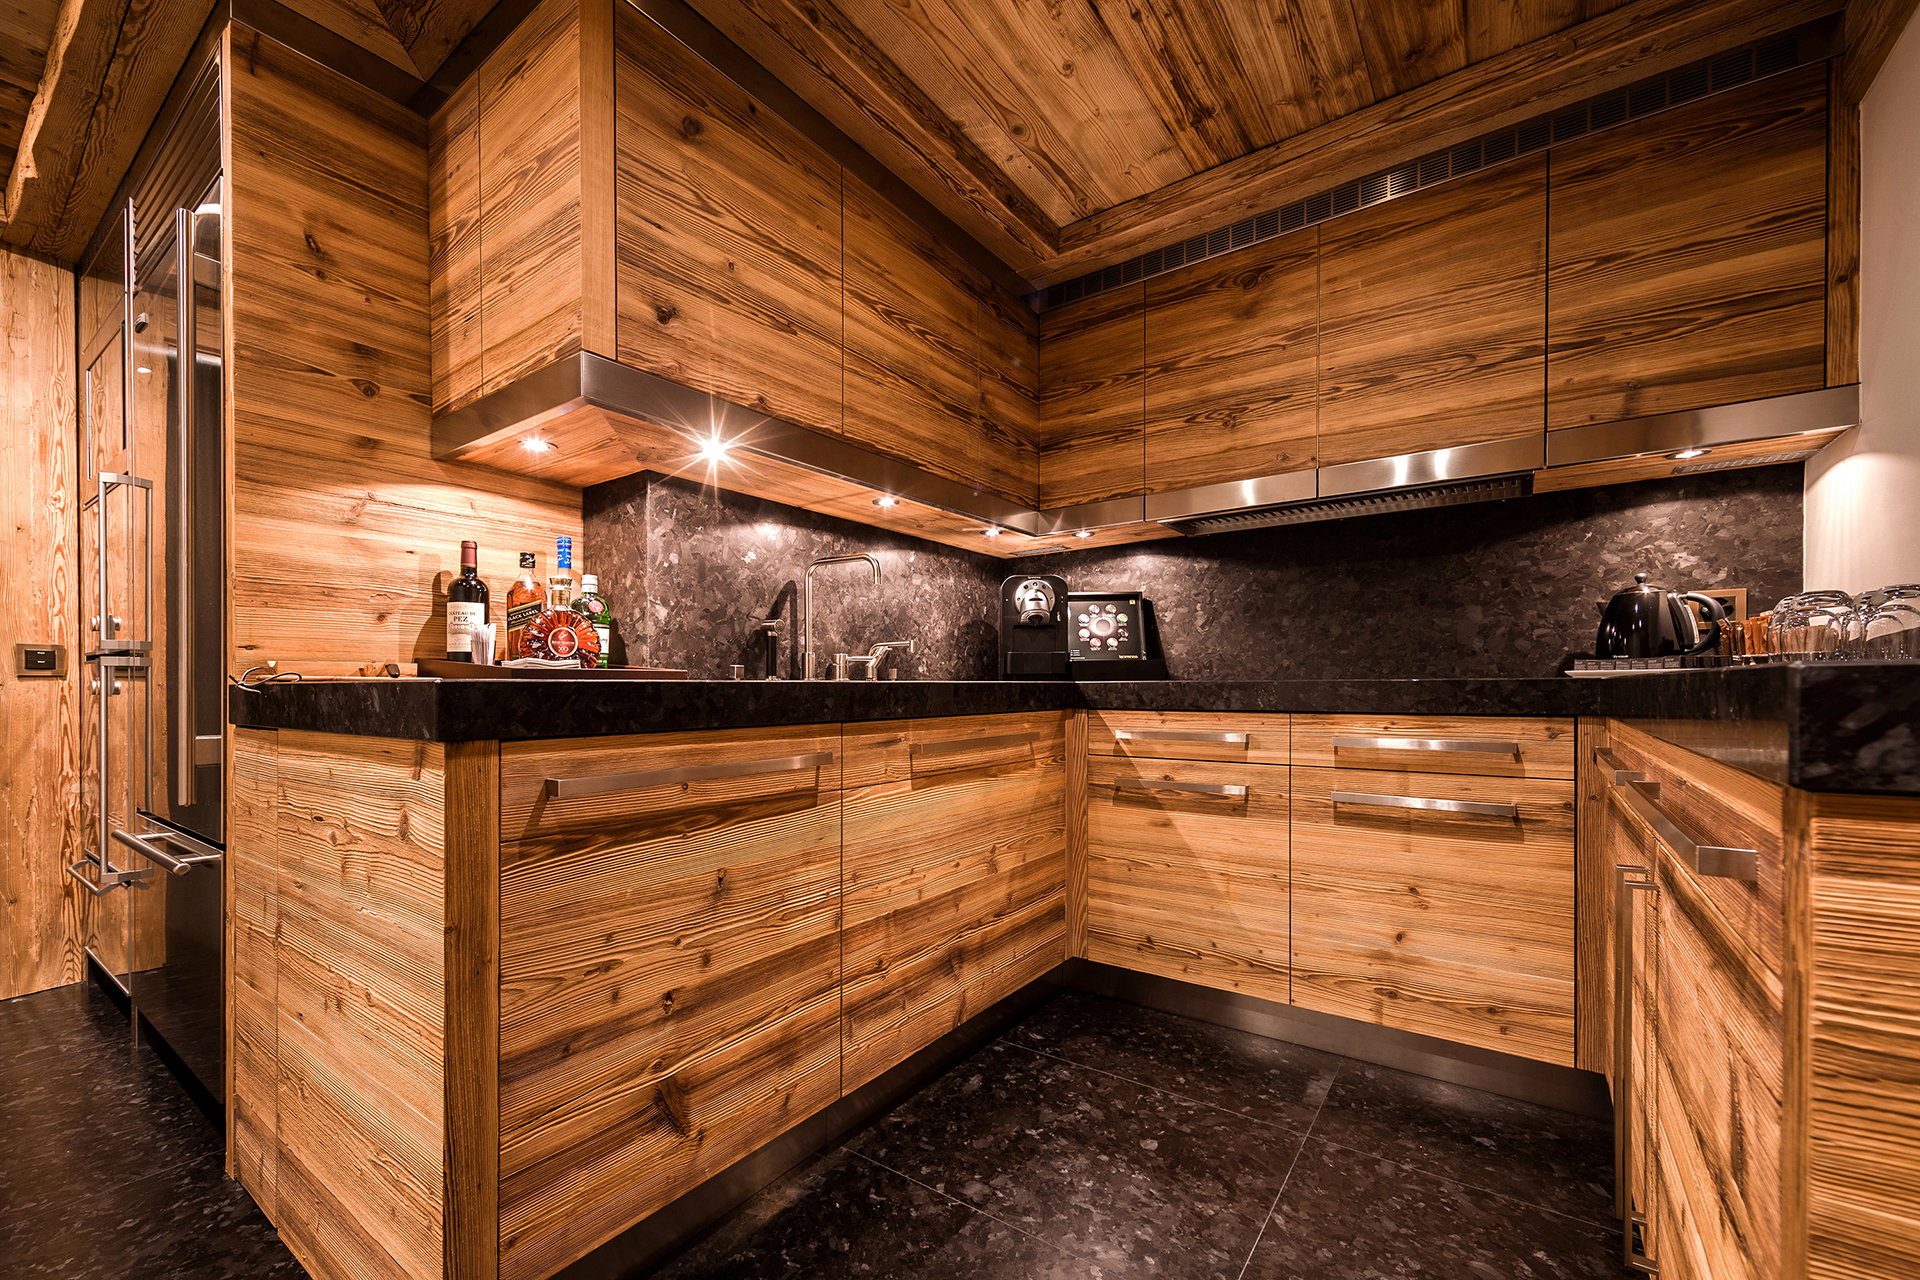 TheAlpinaGstaad_Rooms&Suites_0292_1920.jpg